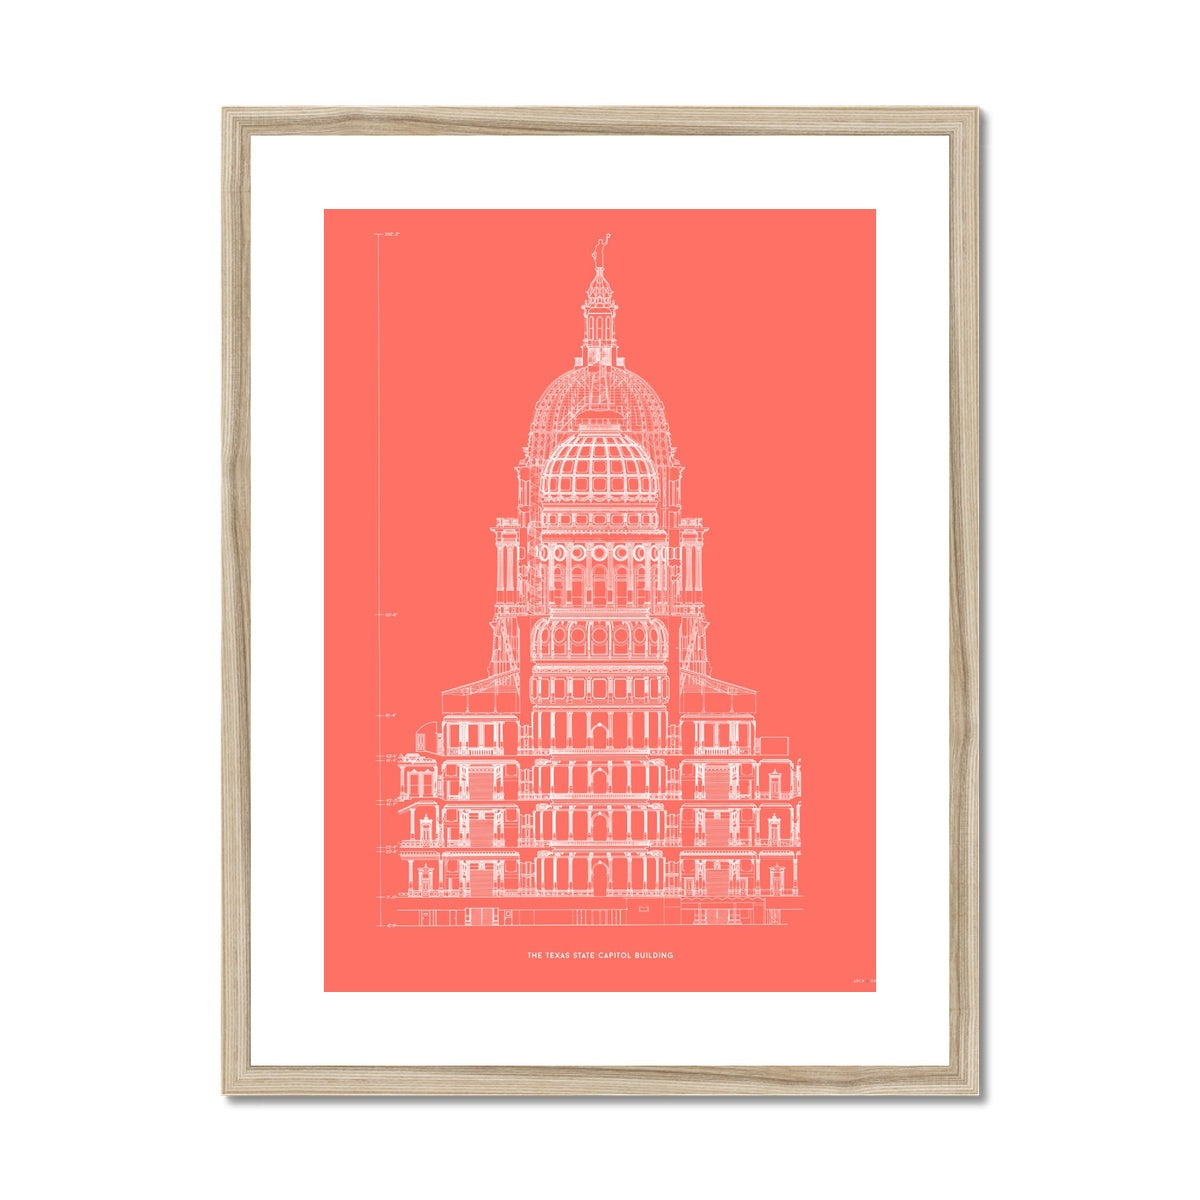 The Texas State Capitol Building - Rotunda Cross Section - Red -  Framed & Mounted Print